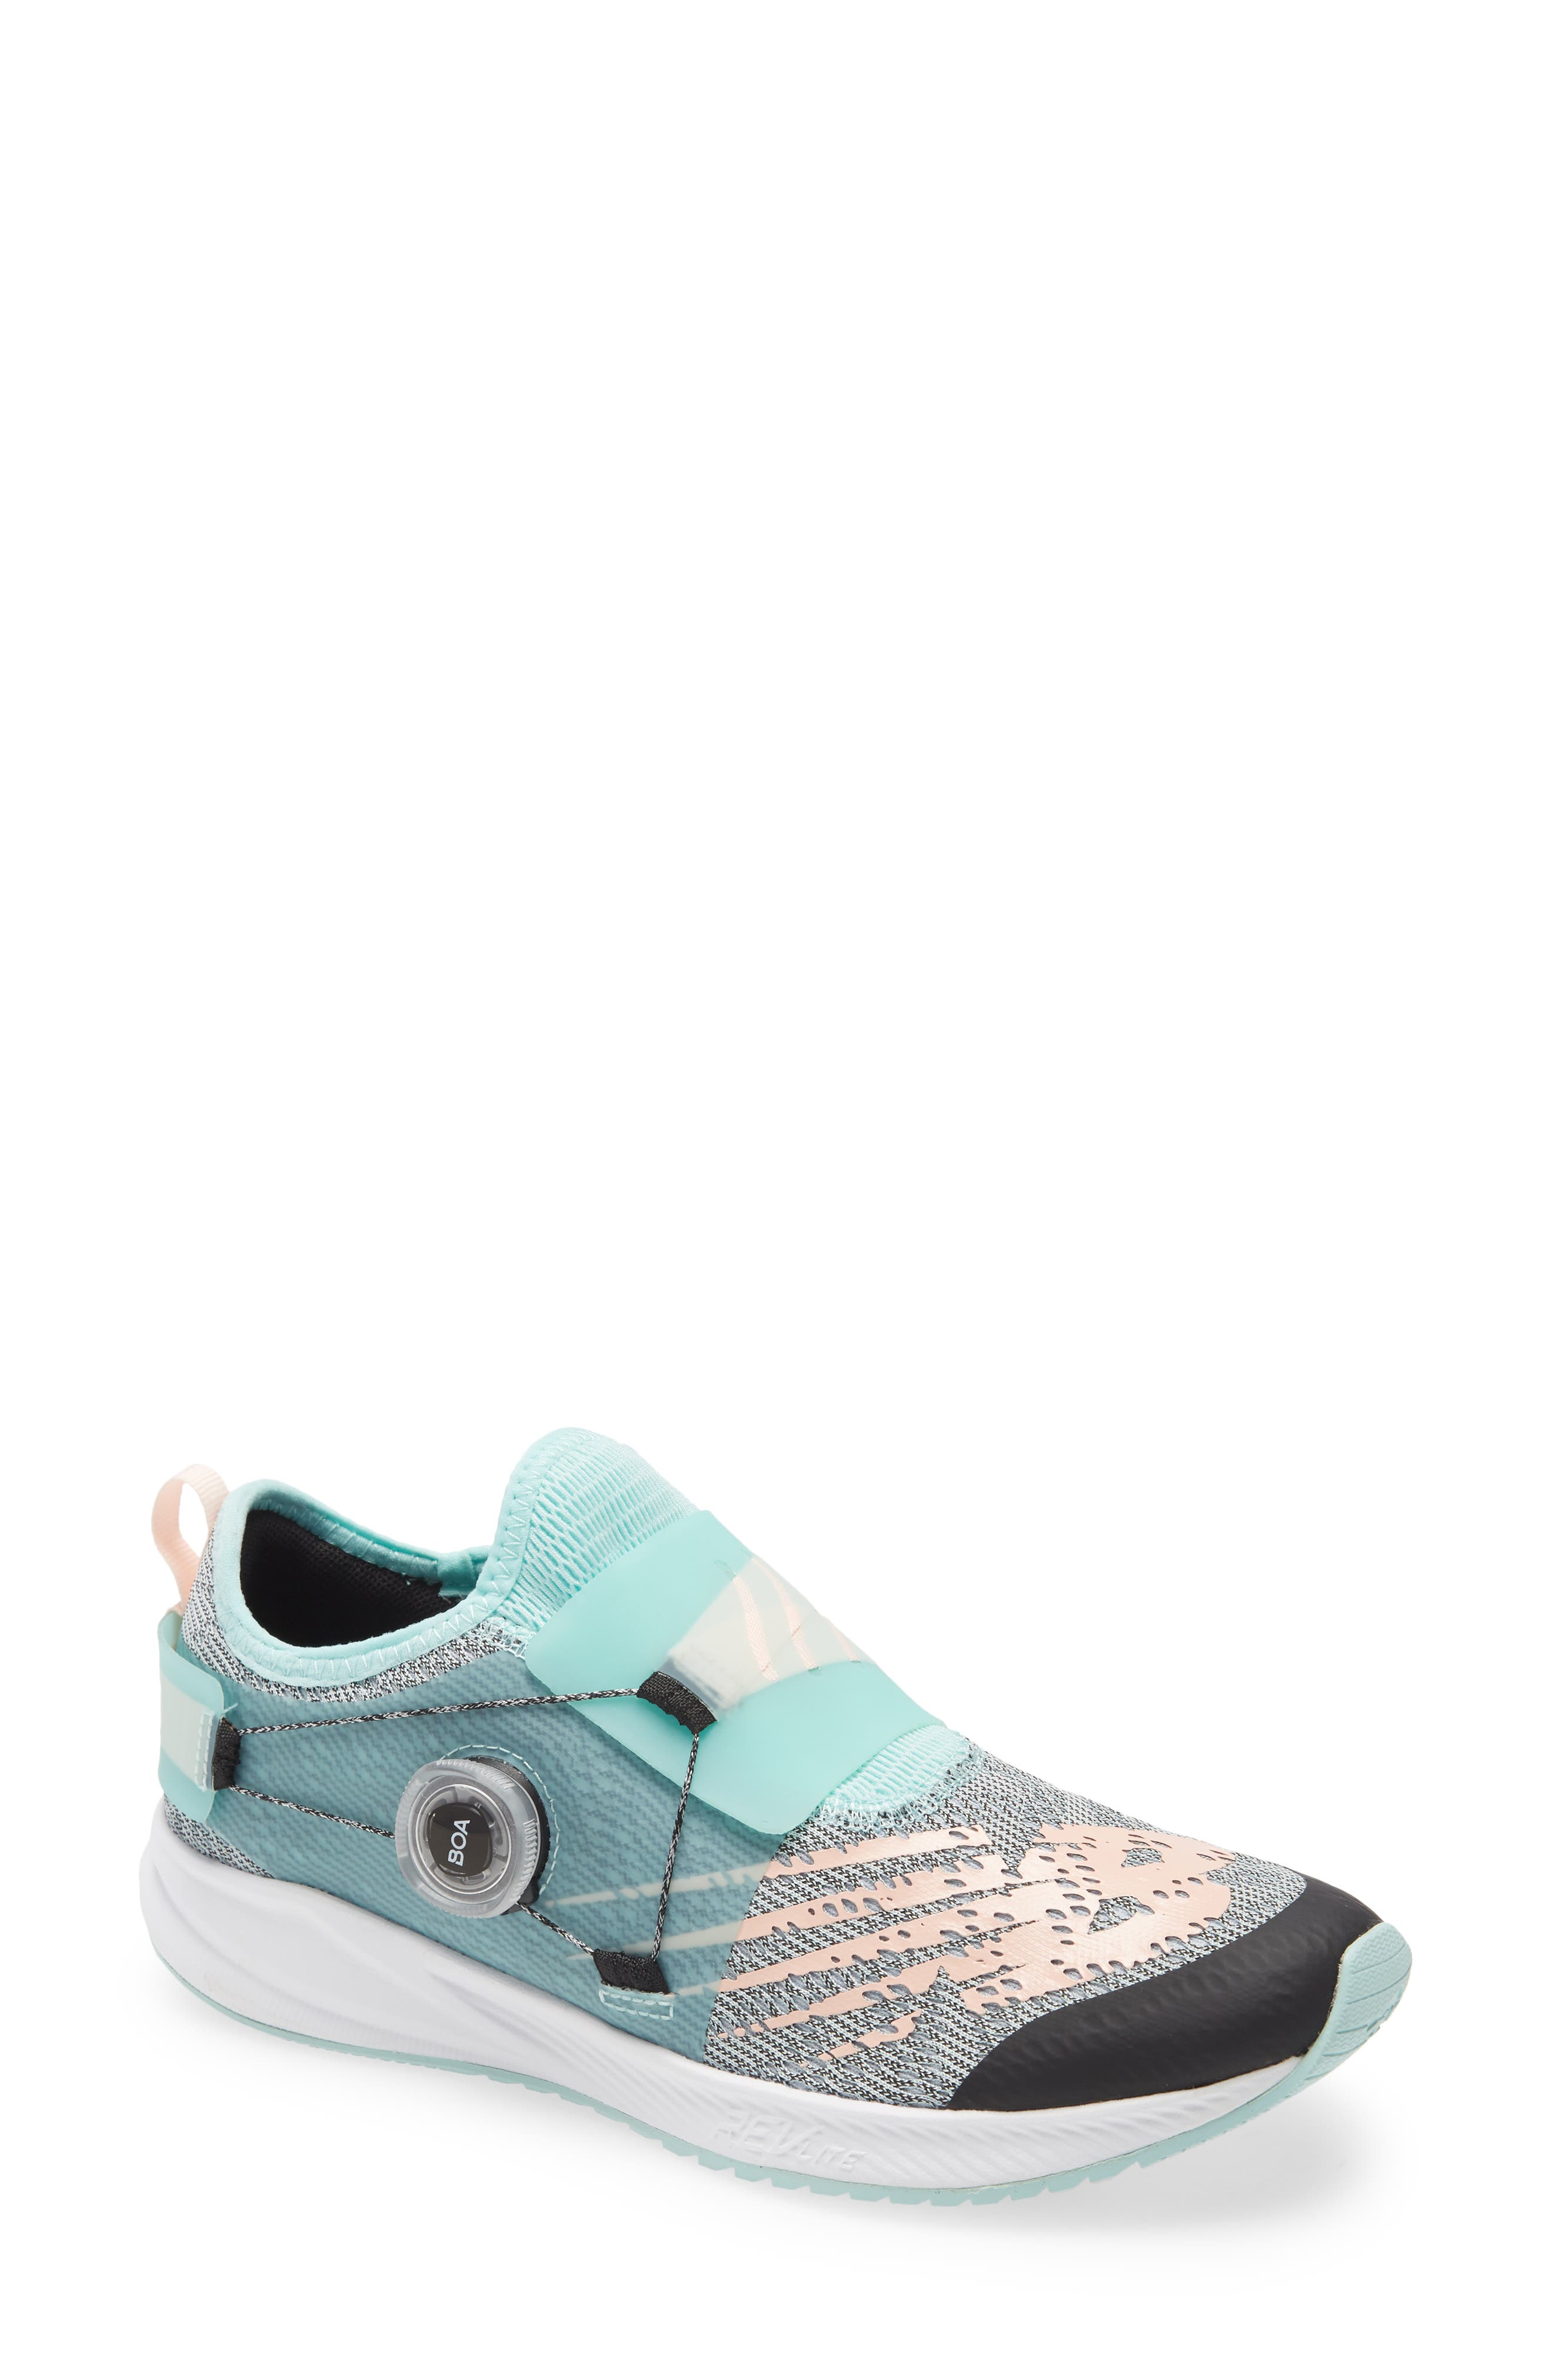 Girls' Shoes Clearance | Nordstrom Rack